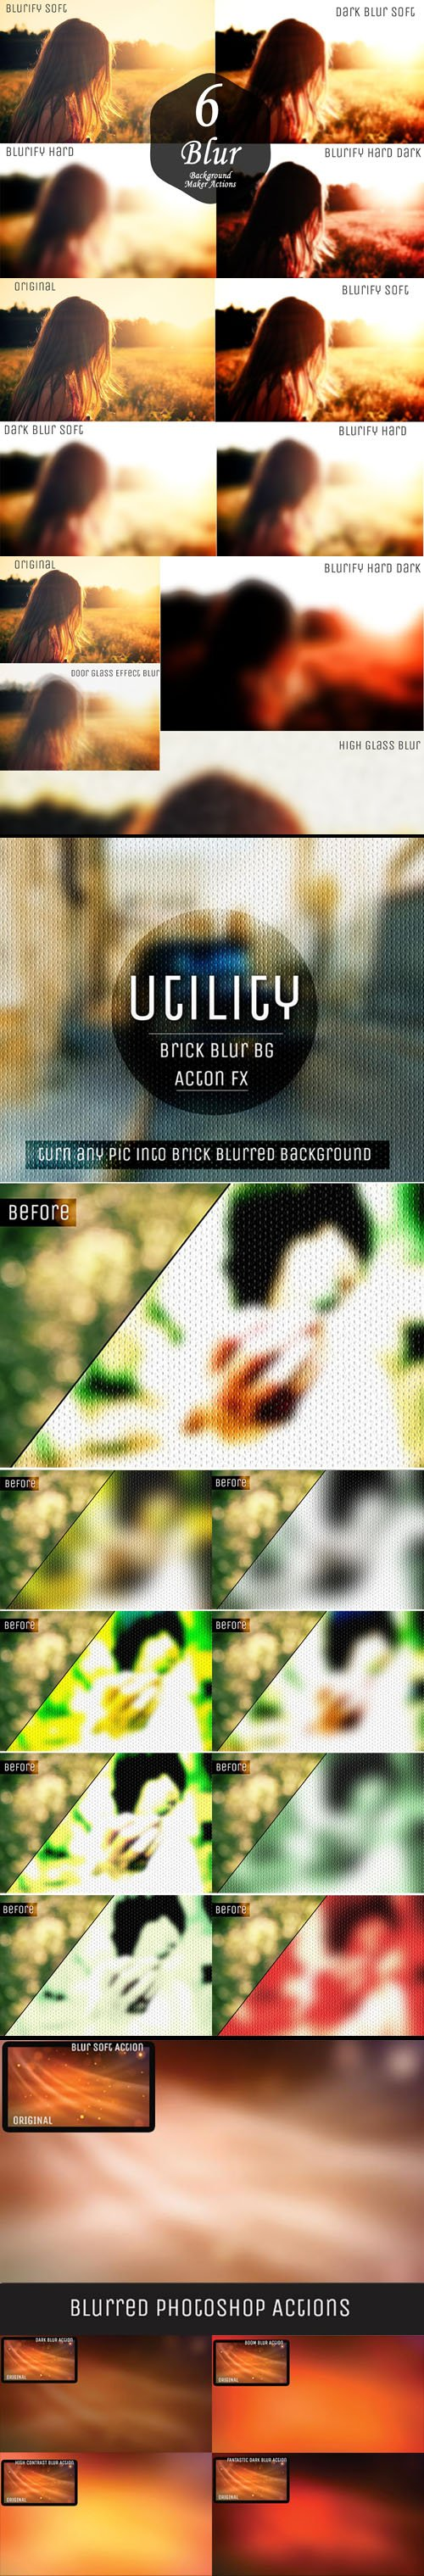 20 Blur Background Maker Actions for Photoshop (RAW/JPEG)